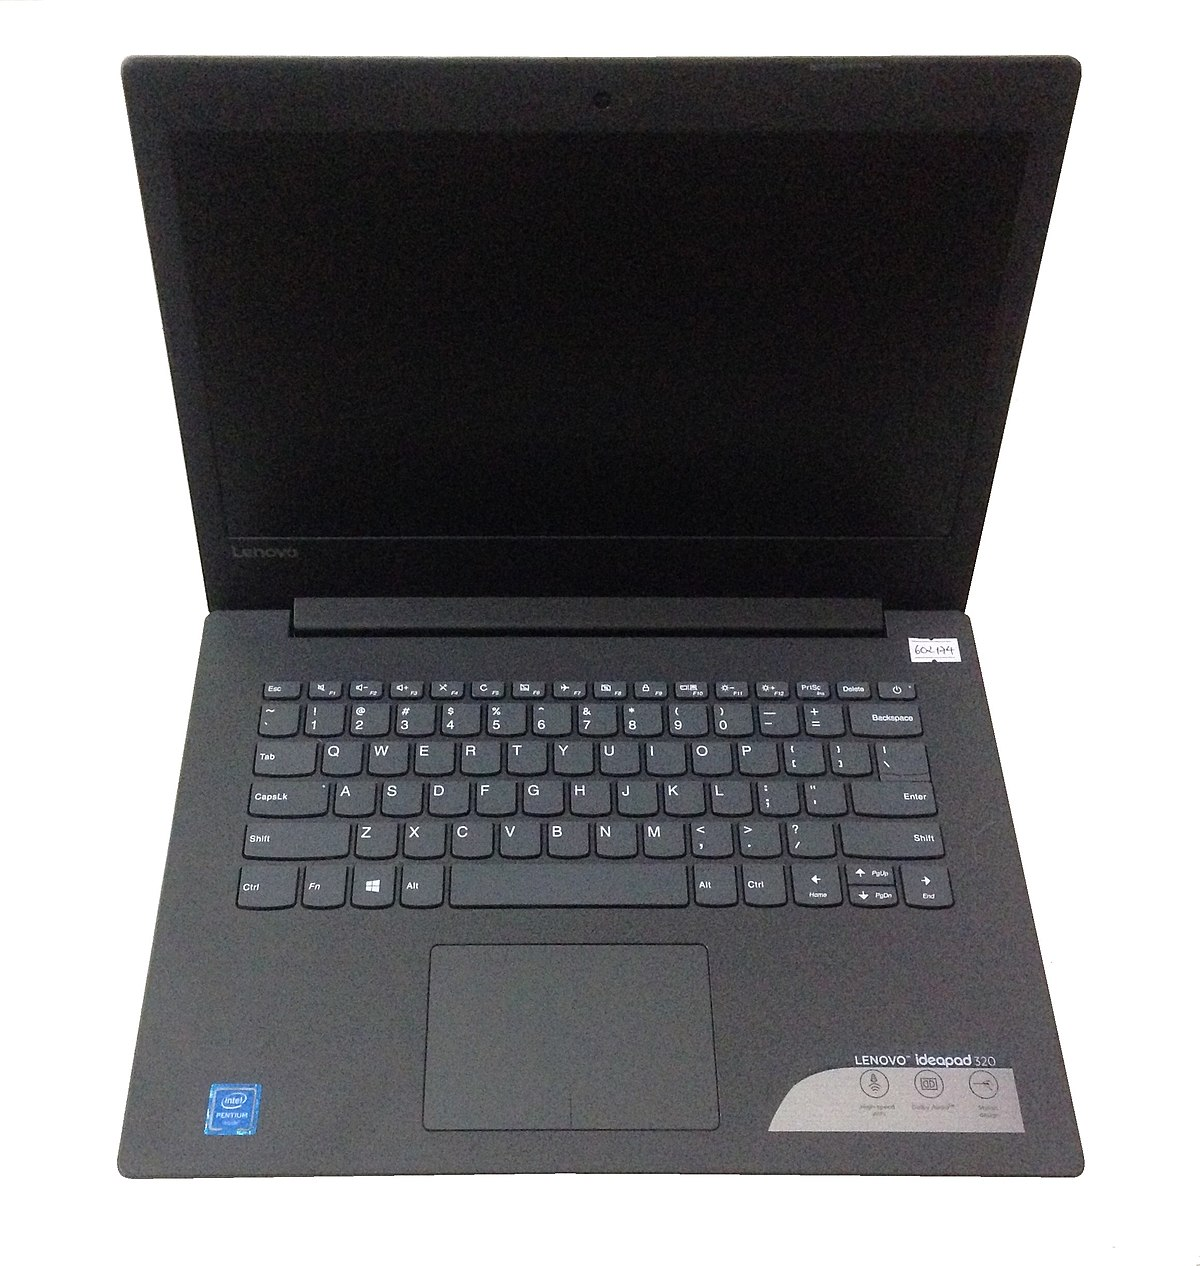 Lenovo Laptop Ideapad Wikipedia